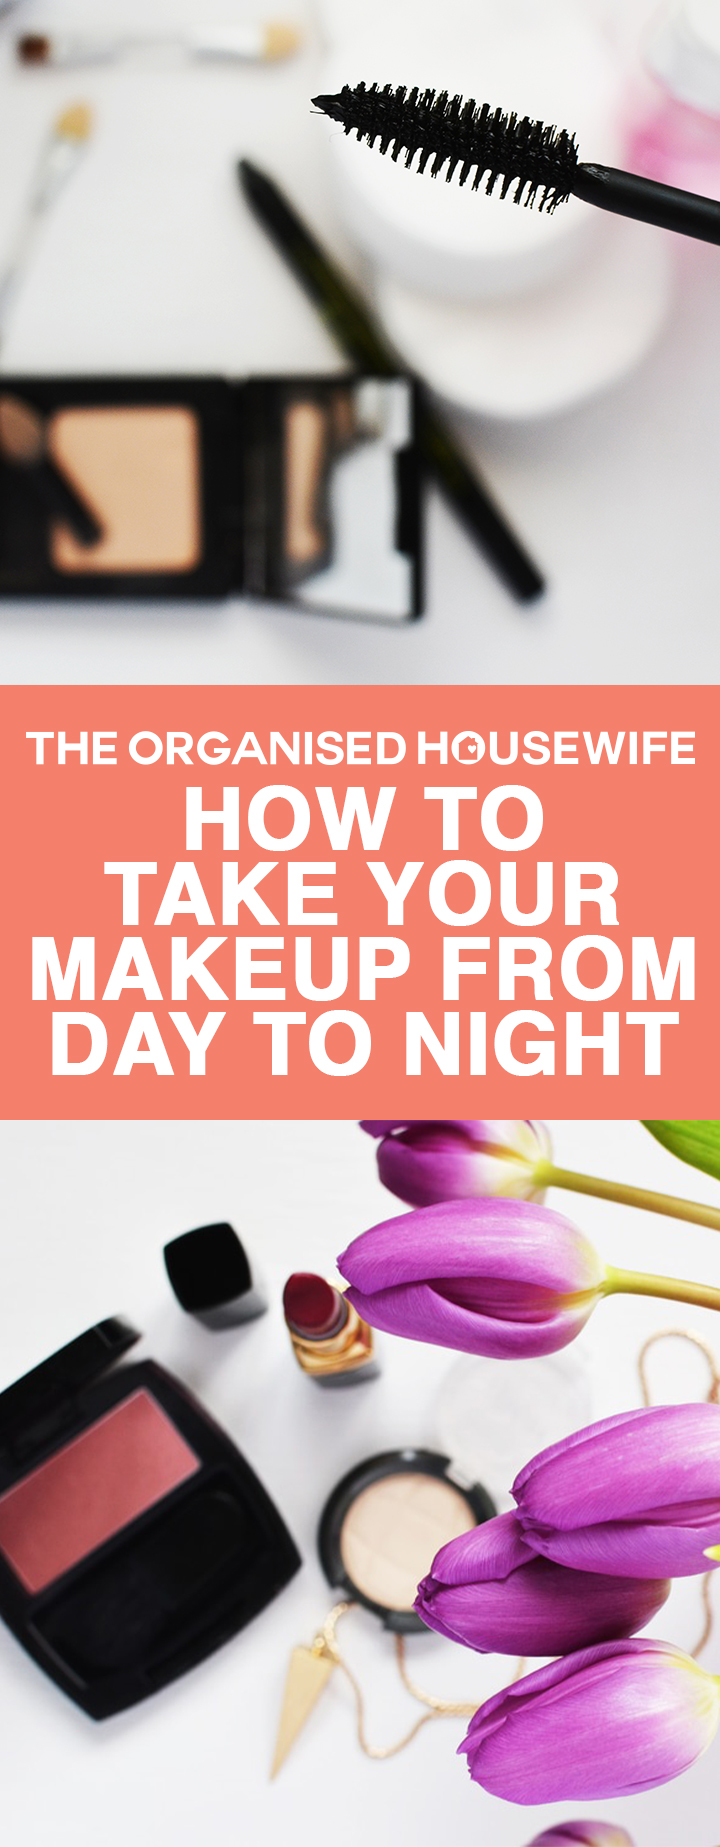 Real mum quick and easy ideas, showing us how to take your makeup from day to night.